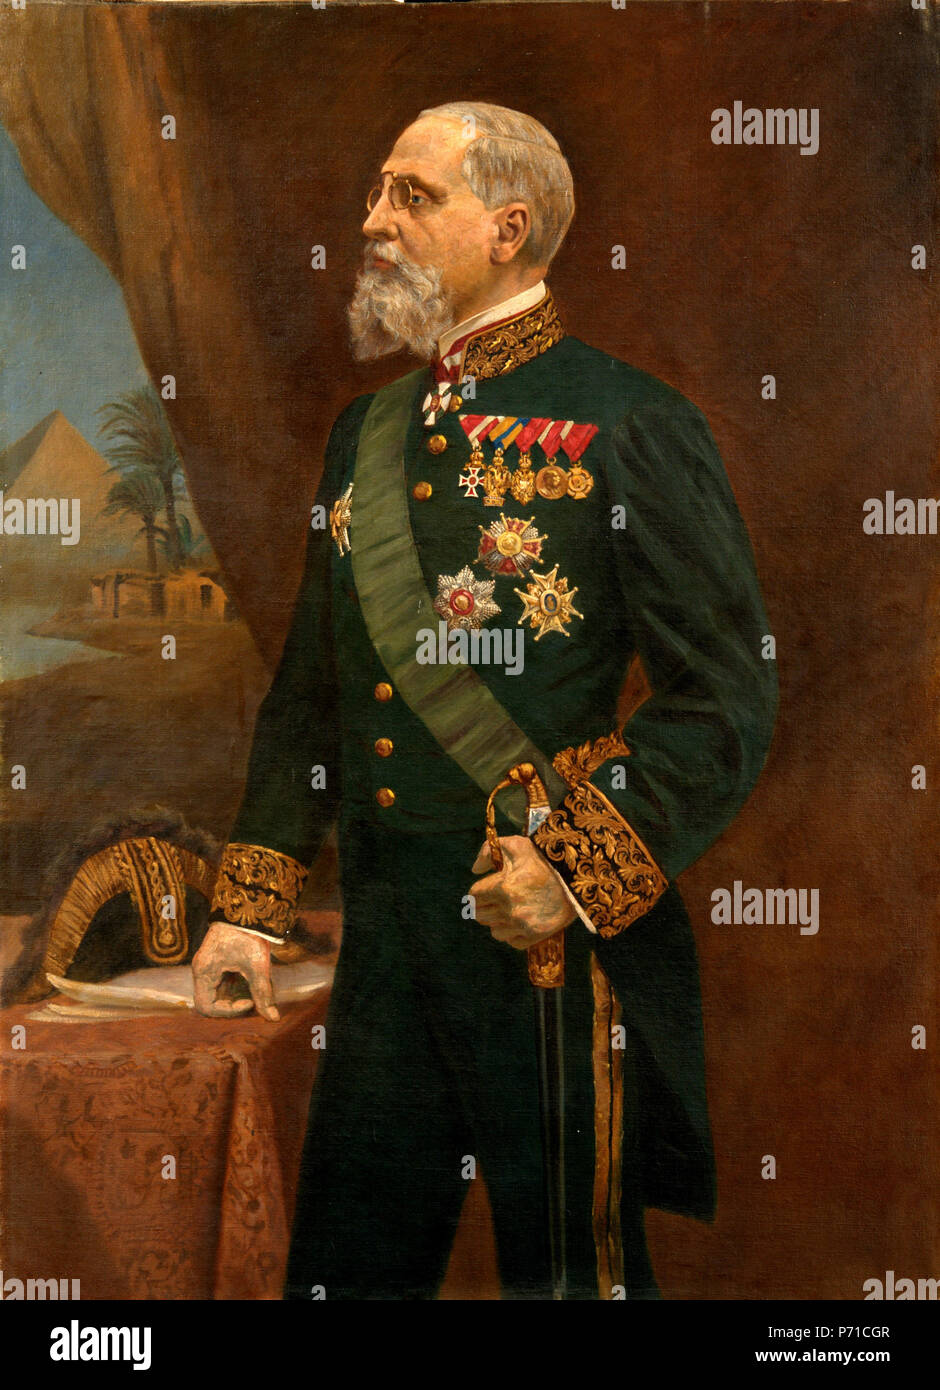 English: Coloured copy of the painting by the Moravian painter Karel Žádník (1847-1929), made in Bilowitz in 1912 of Count Hugo II Logothetti. The painting was till May 1945 at the family manor in Bilowitz and is now in possession of the Slovacké Muzeum, Uherské Hradiště.   Nikon D300 + AF-S Micro Nikkor 60mm f/2.8G ED   .  1912  Picture (2011) of the original painting 3 Hugo II Logothetti - Stock Image